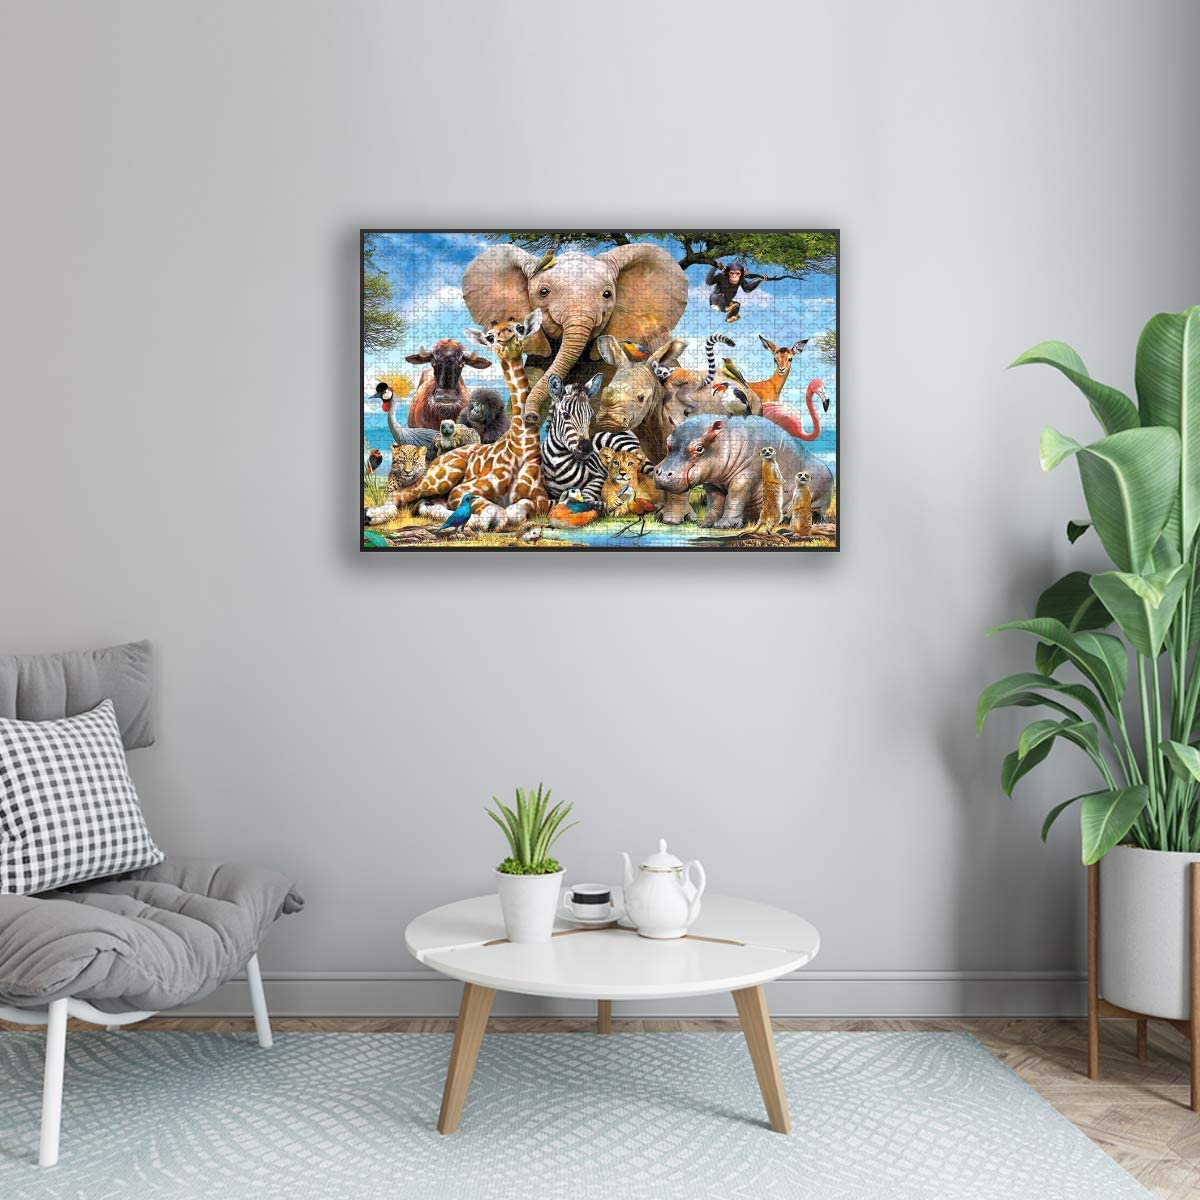 Jigsaw Puzzle 1000 Piece for Adults /& Kids African Animal World Jungle Beasts Puzzles Intellectual Decompressing Fun Family Game Large Puzzle Game Toys Gift